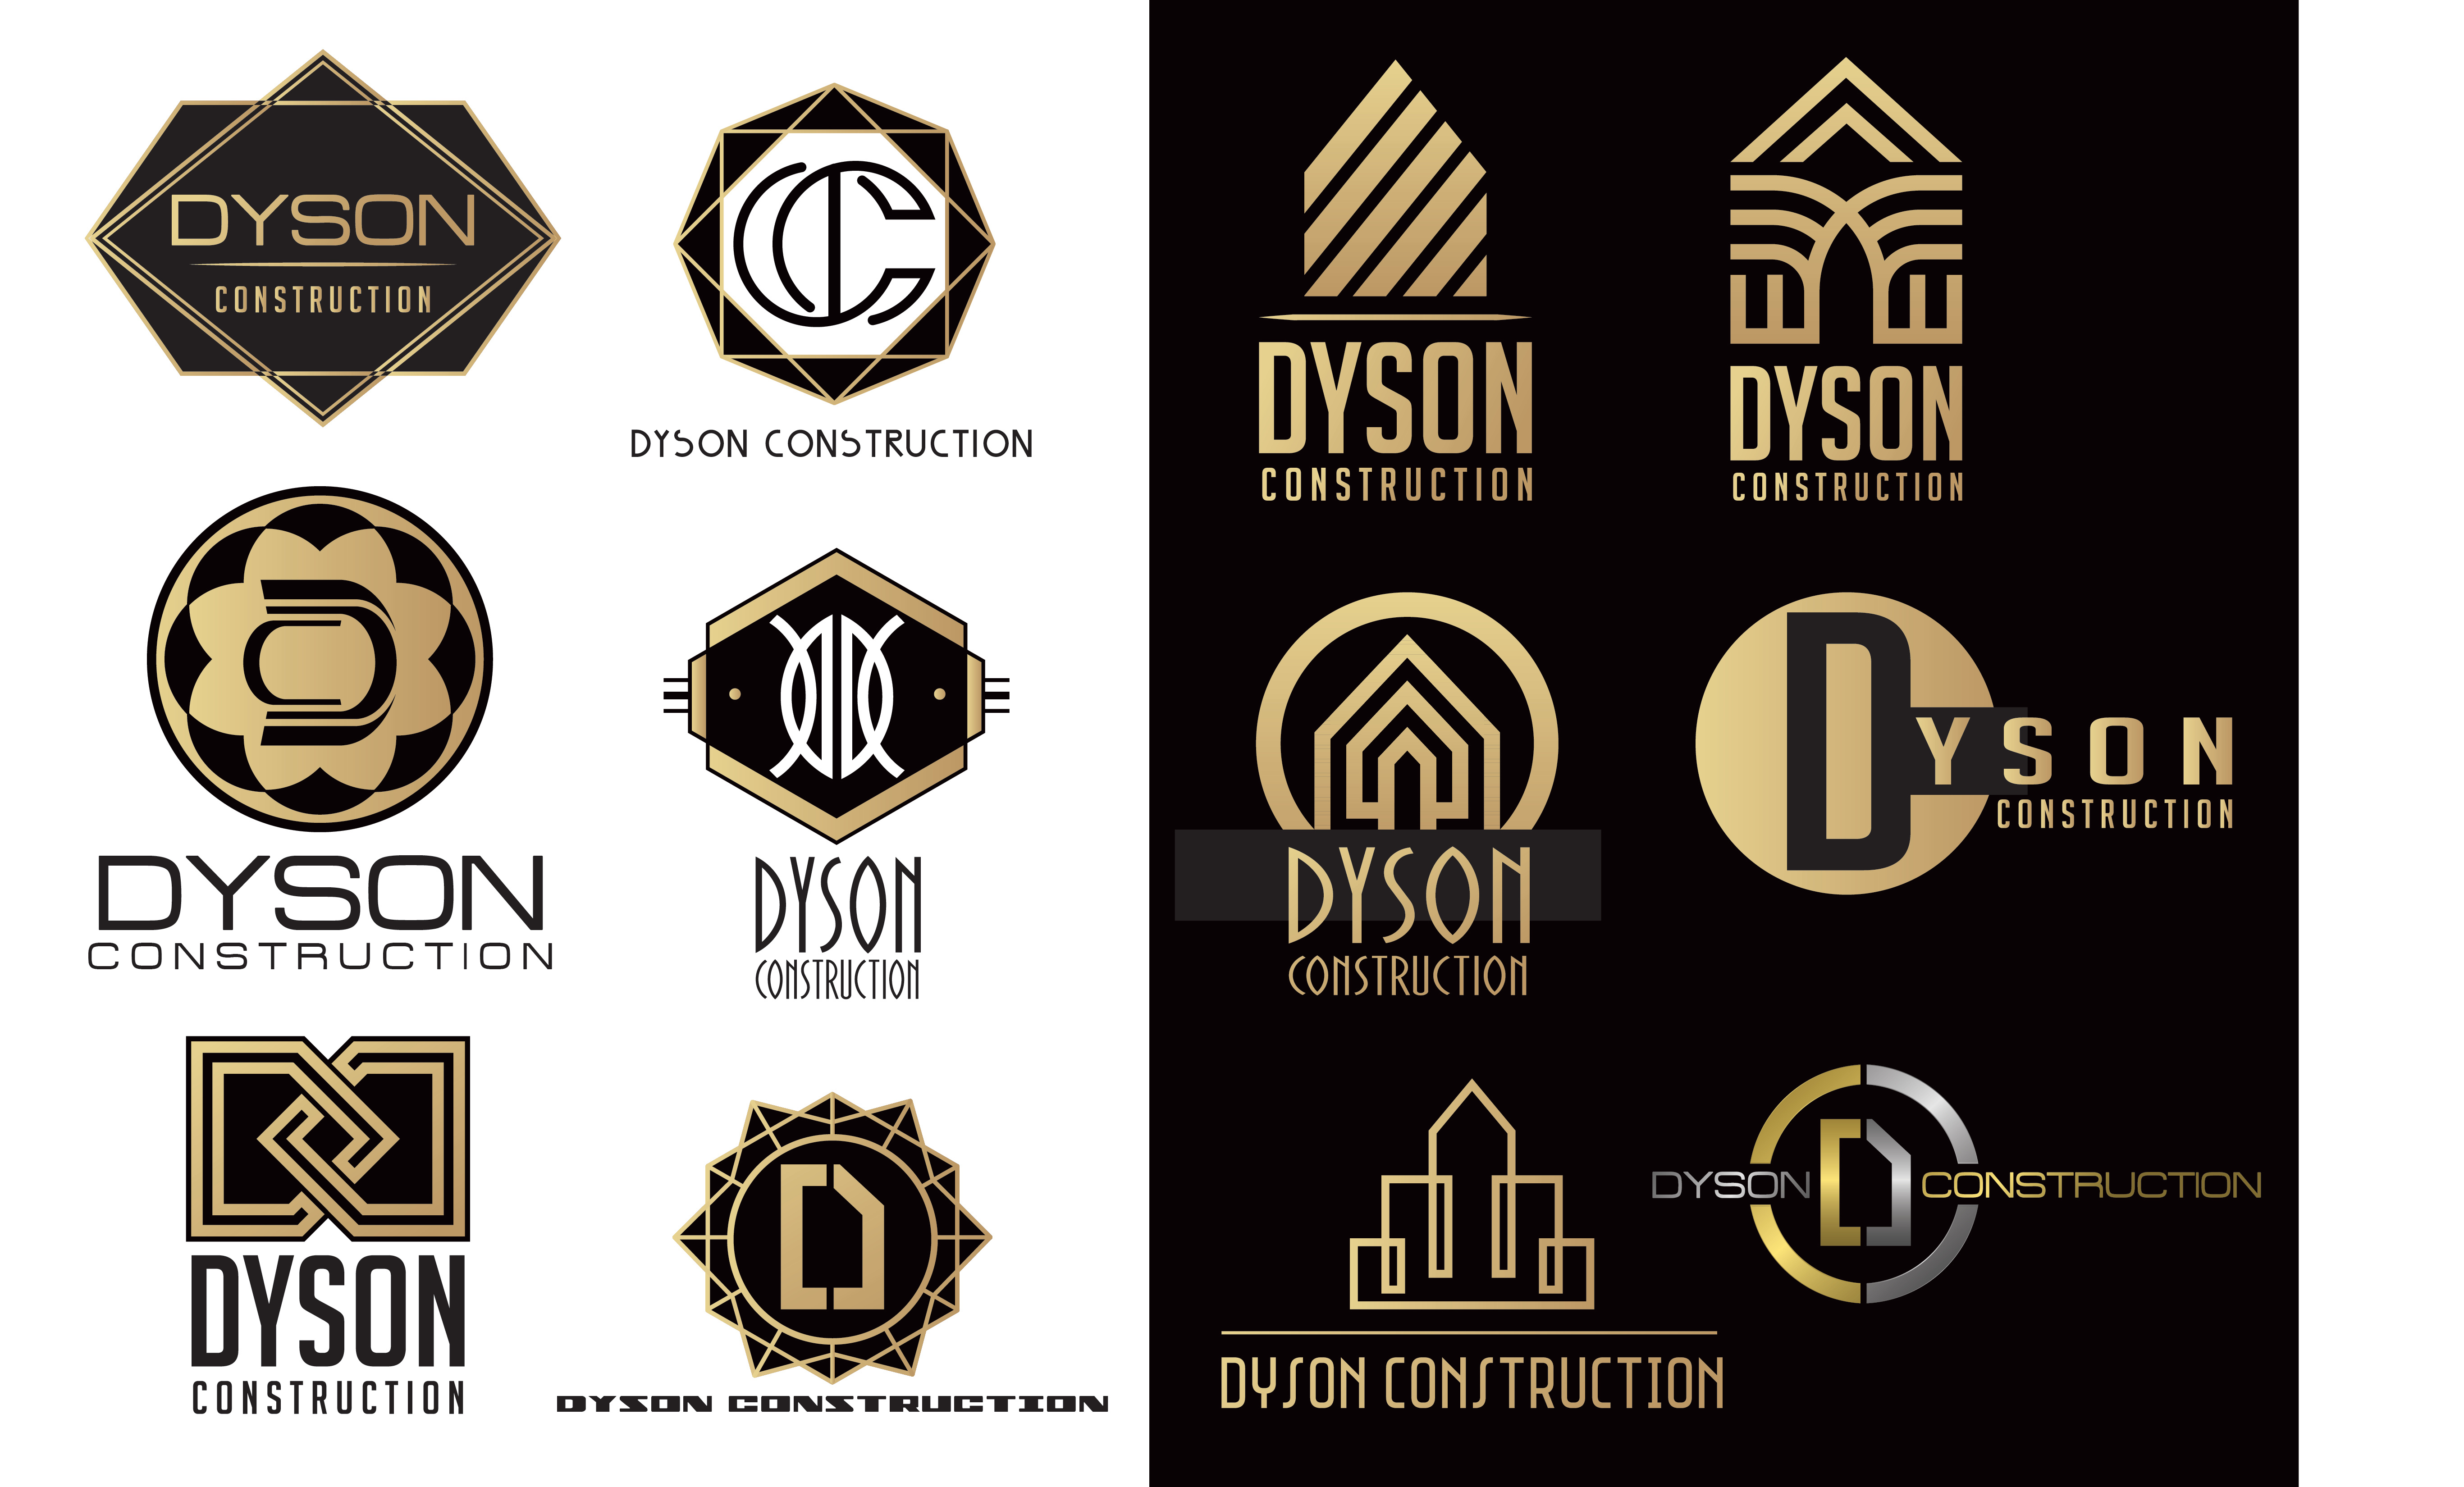 Dyson Construction Concept Sheet